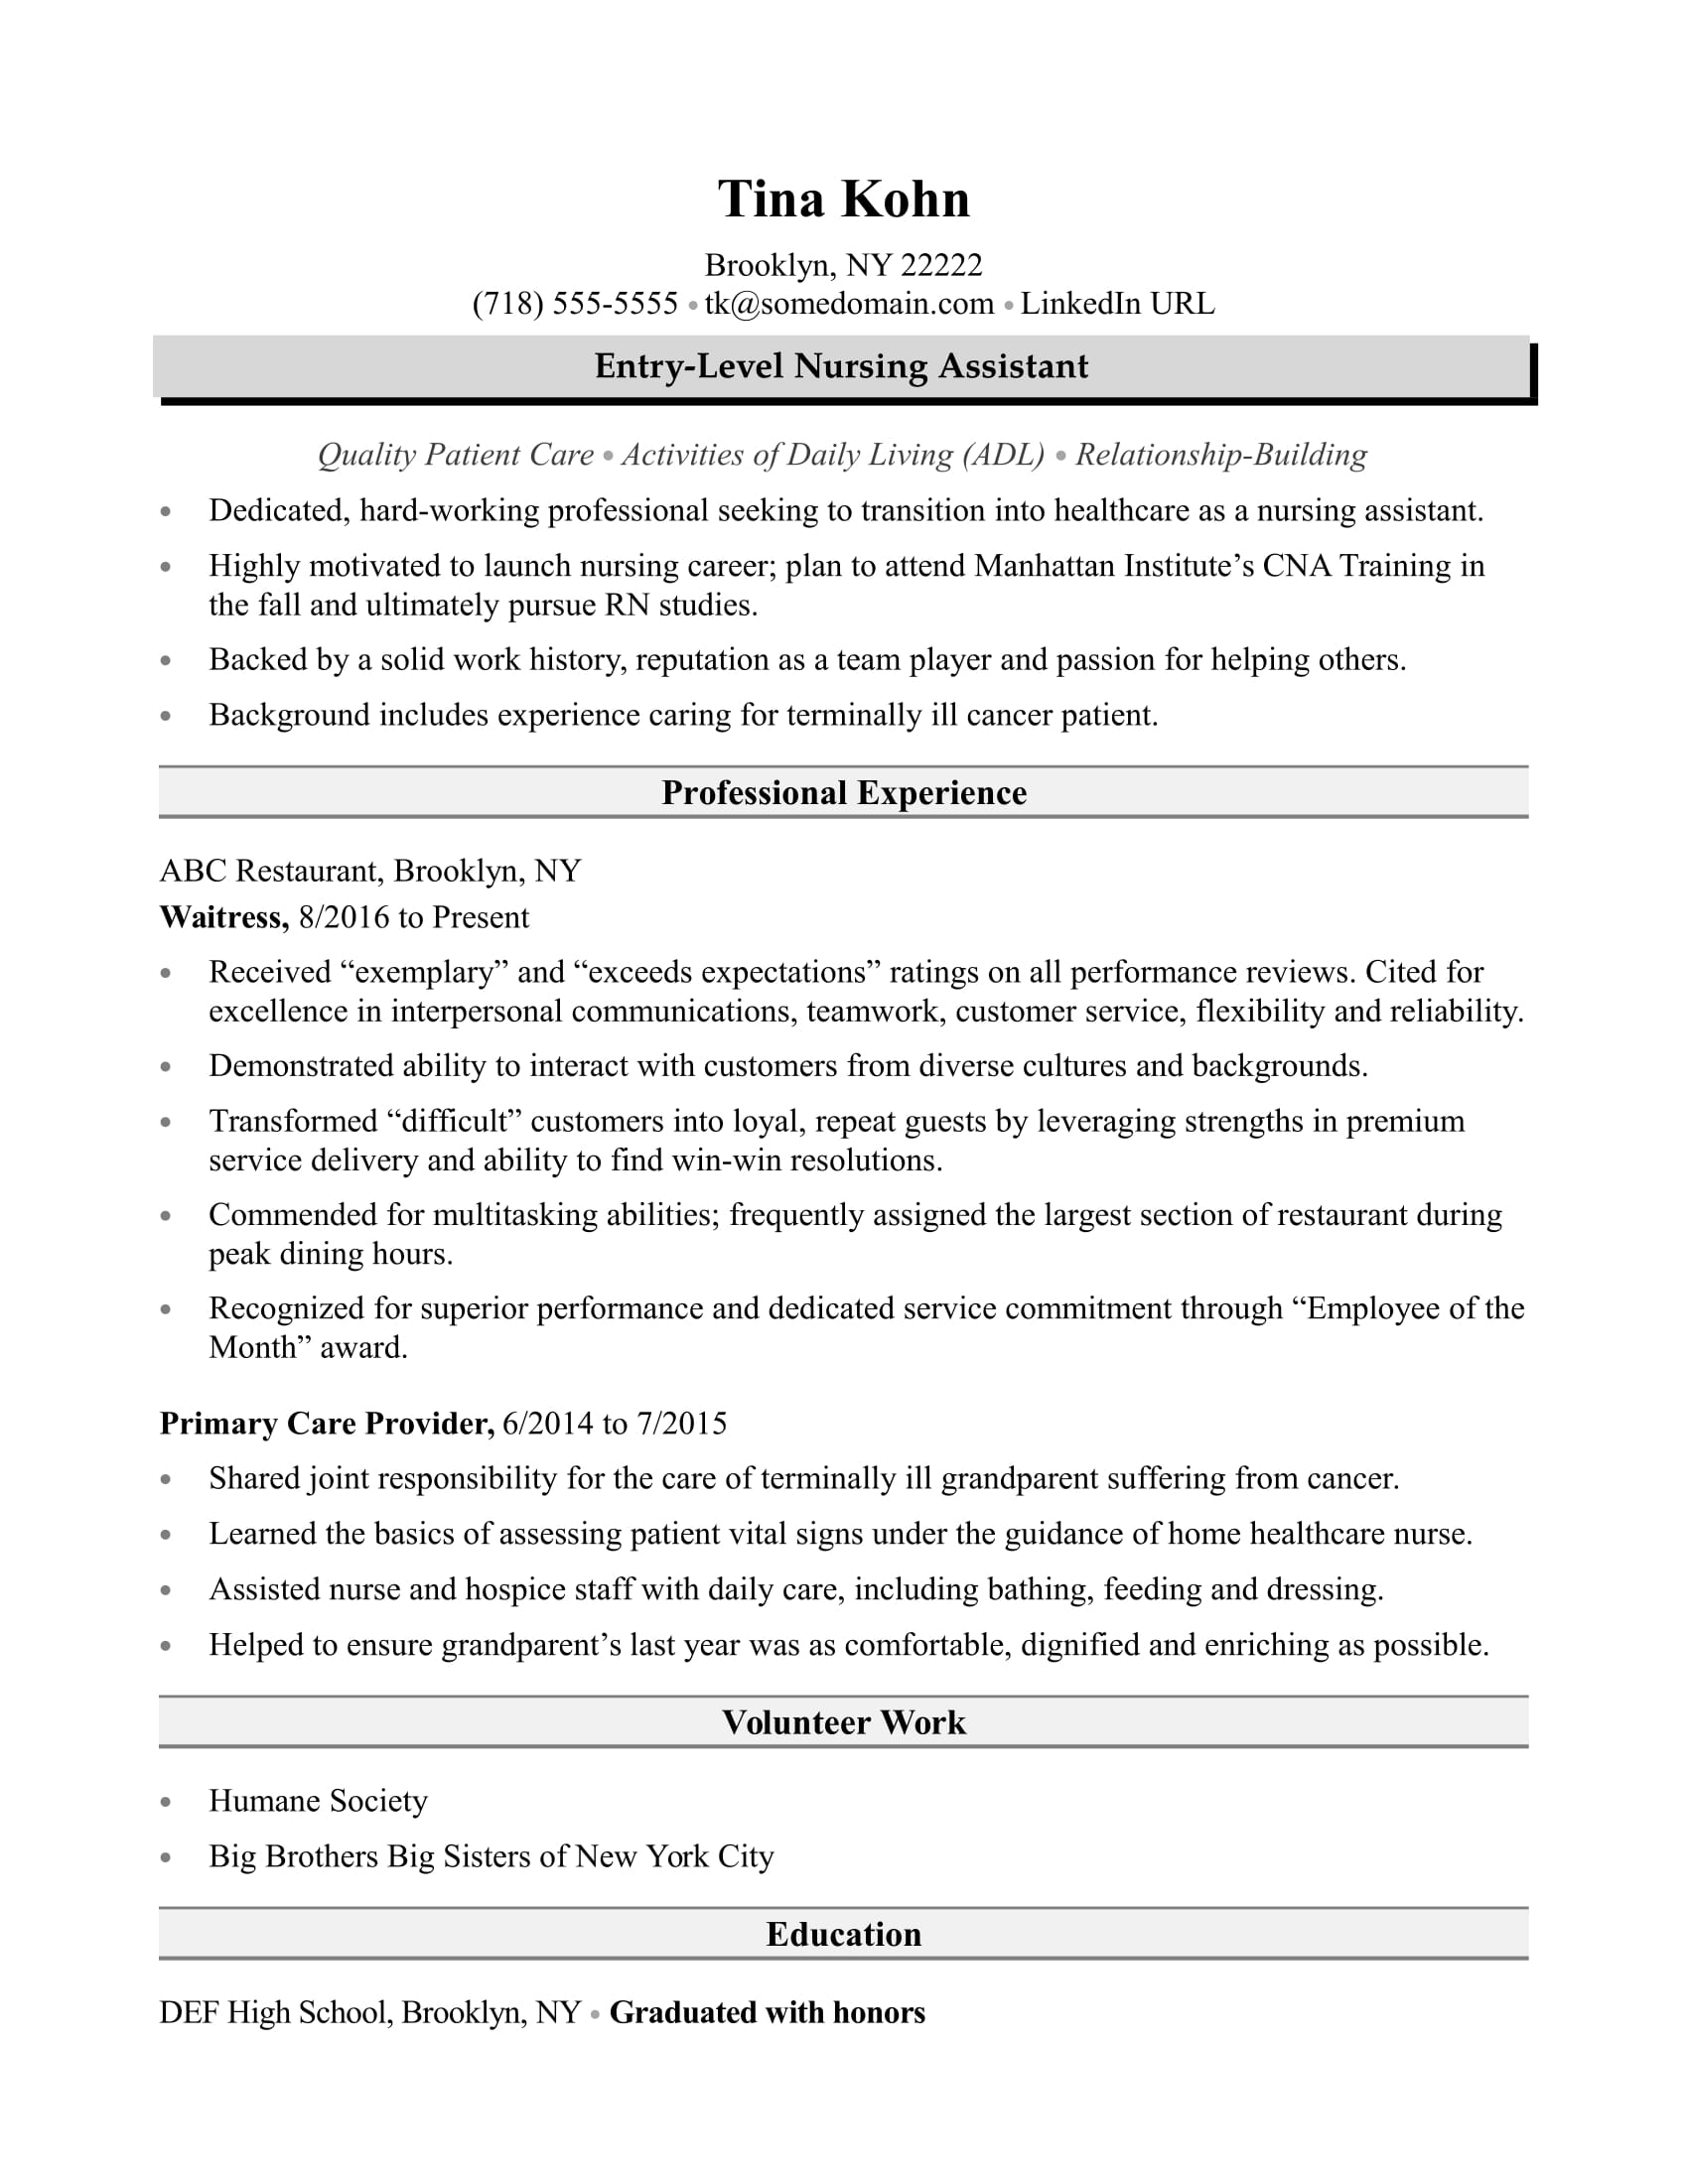 Nursing Assistant Resume Sample  How To Write A Resume With Little Experience